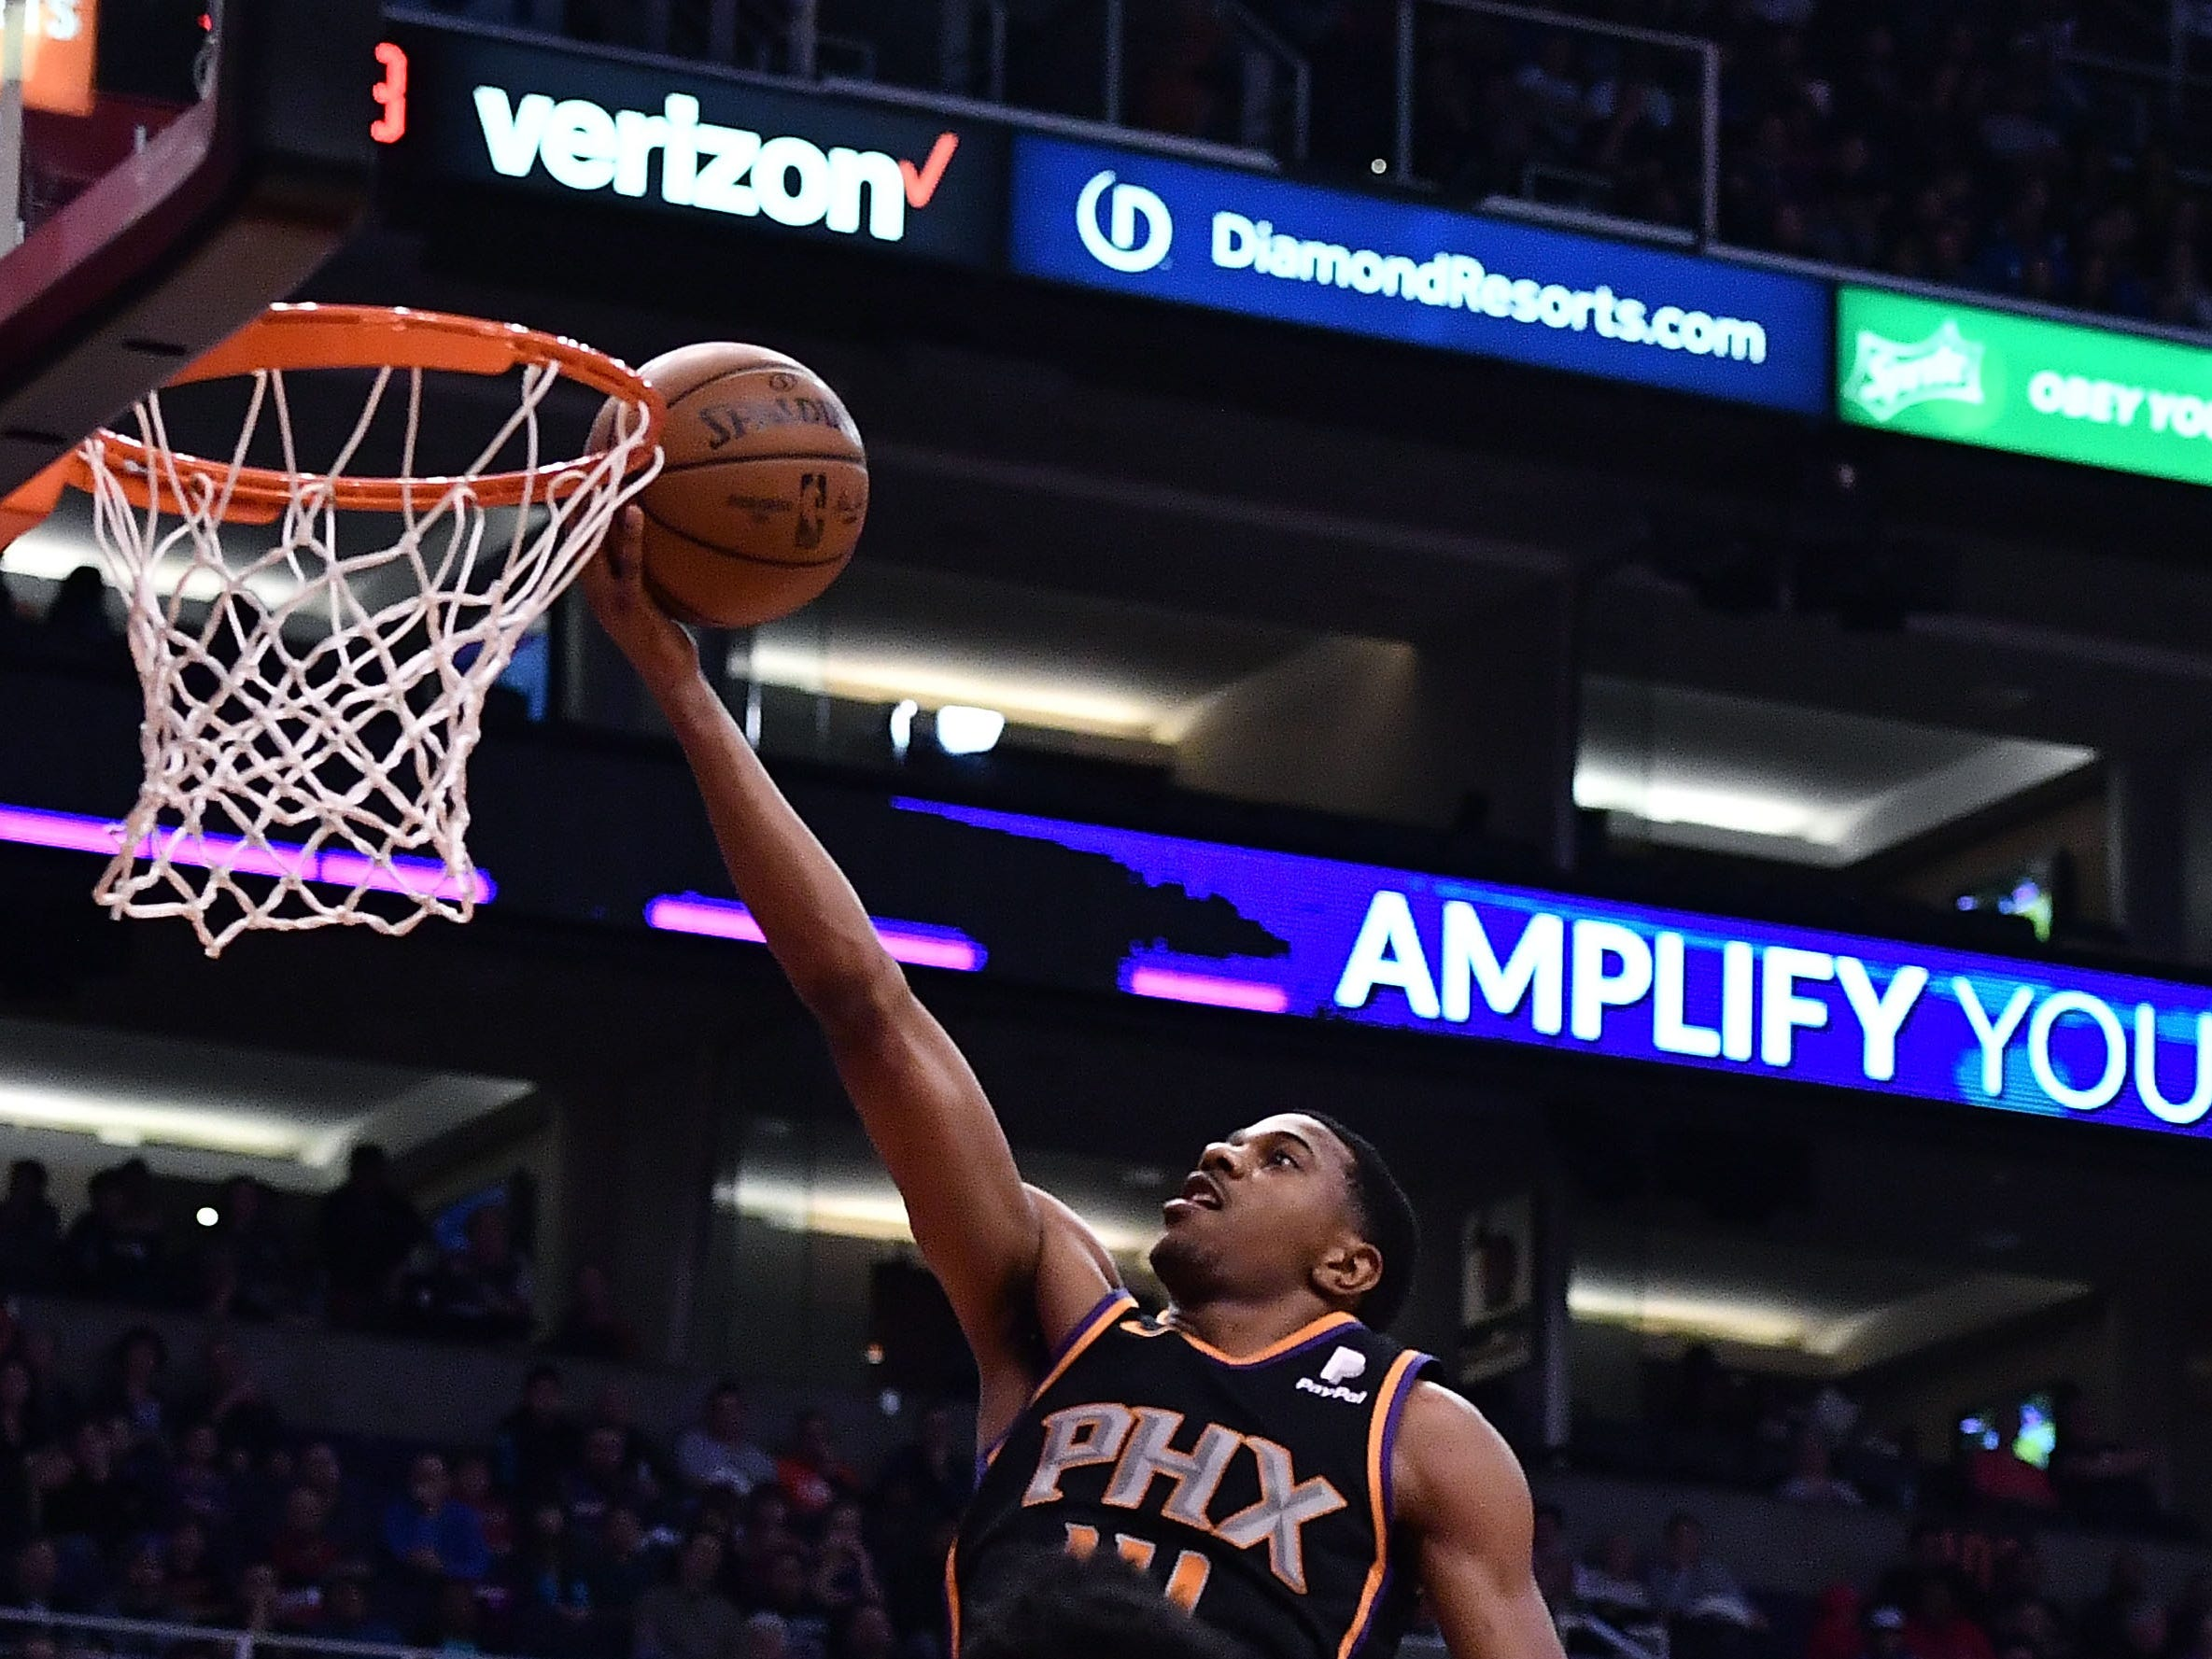 Jan 4, 2019; Phoenix, AZ, USA; Phoenix Suns guard De'Anthony Melton (14) shoots the ball against the LA Clippers in the first half at Talking Stick Resort Arena. Mandatory Credit: Jennifer Stewart-USA TODAY Sports